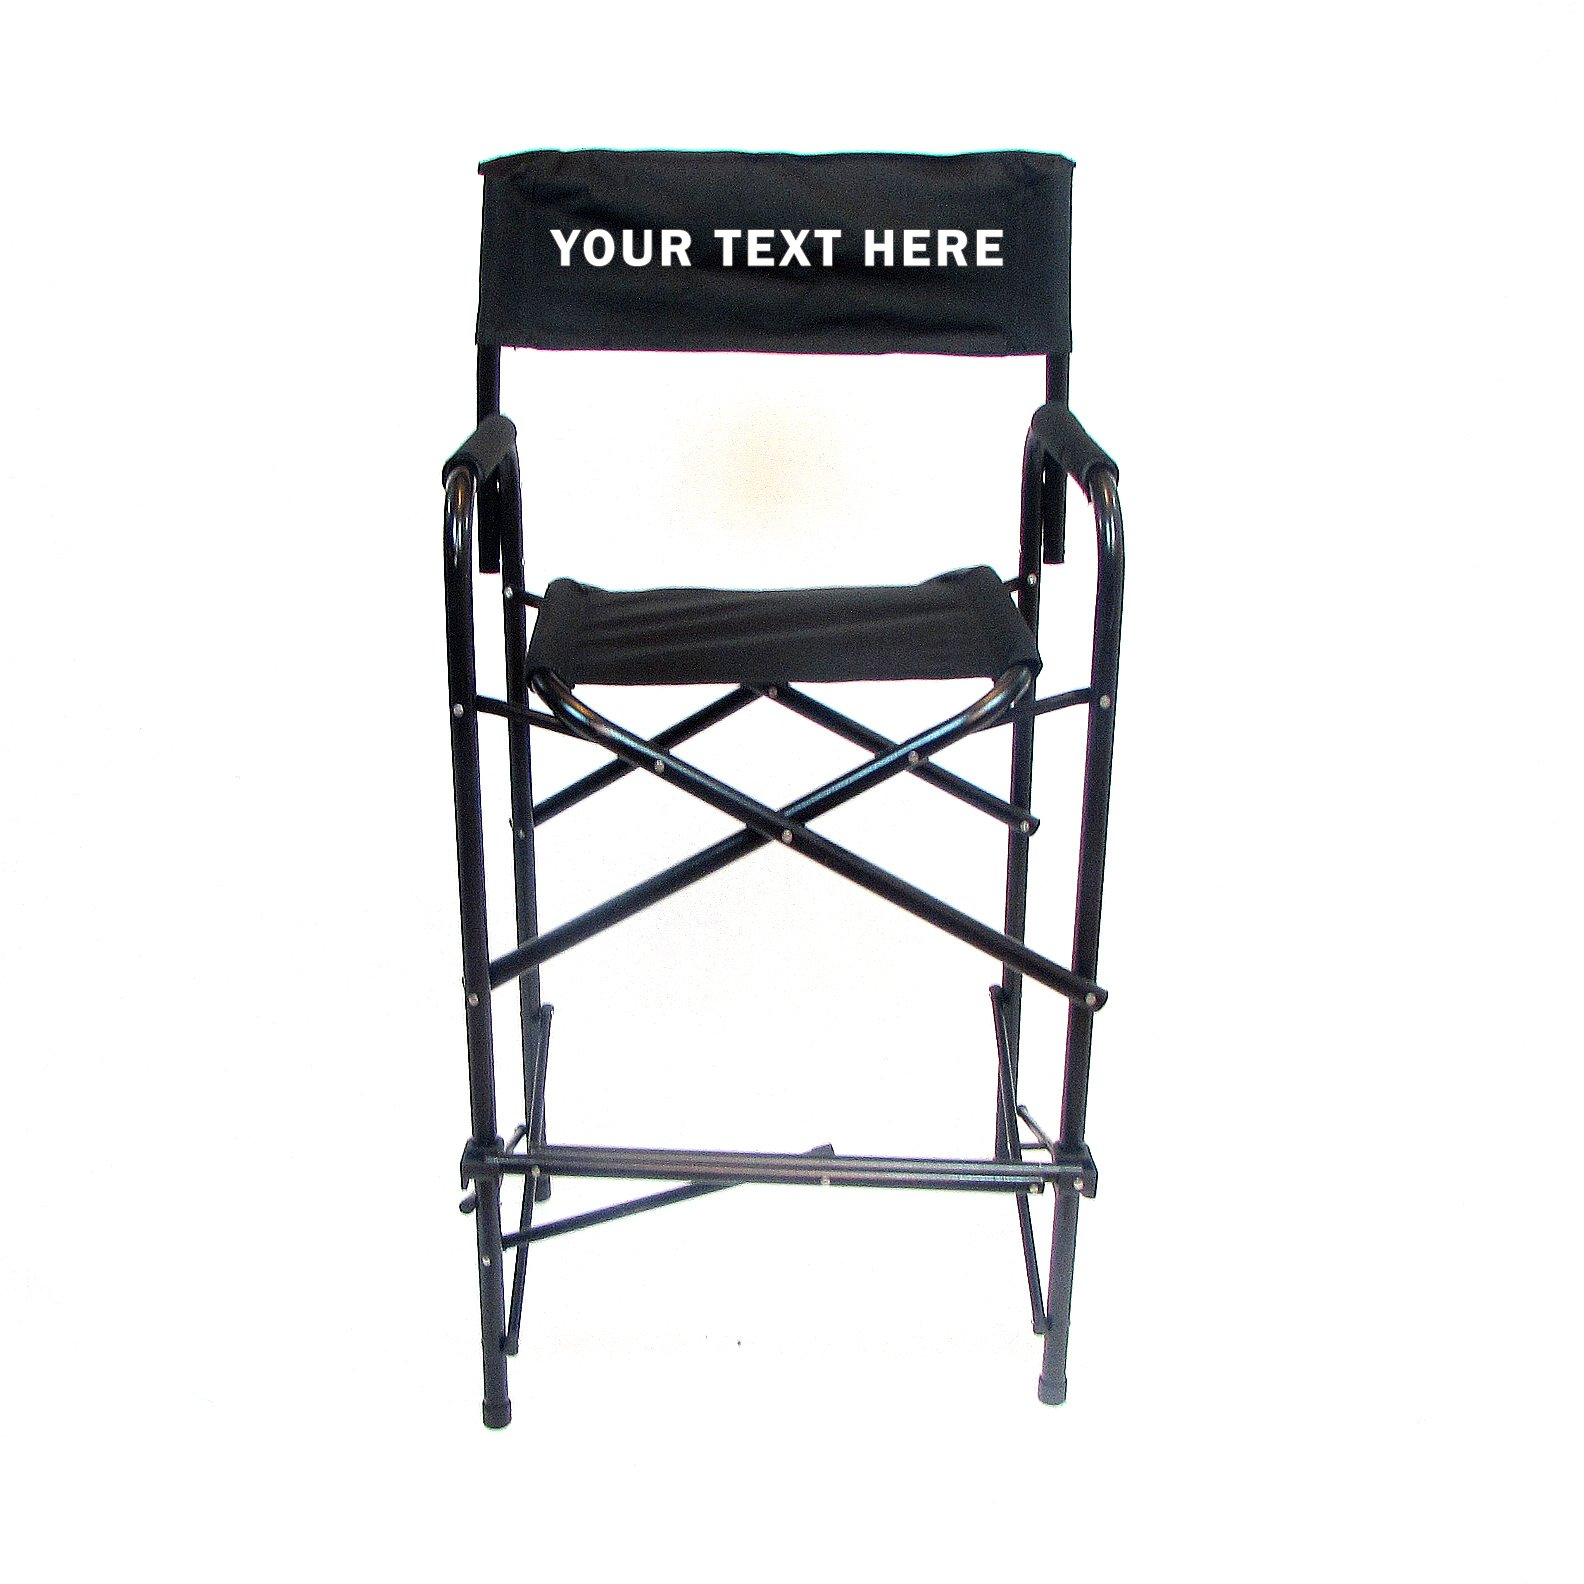 PERSONALIZED IMPRINTED All Aluminum 30'' Standard Directors Chair by E-Z Up - Black